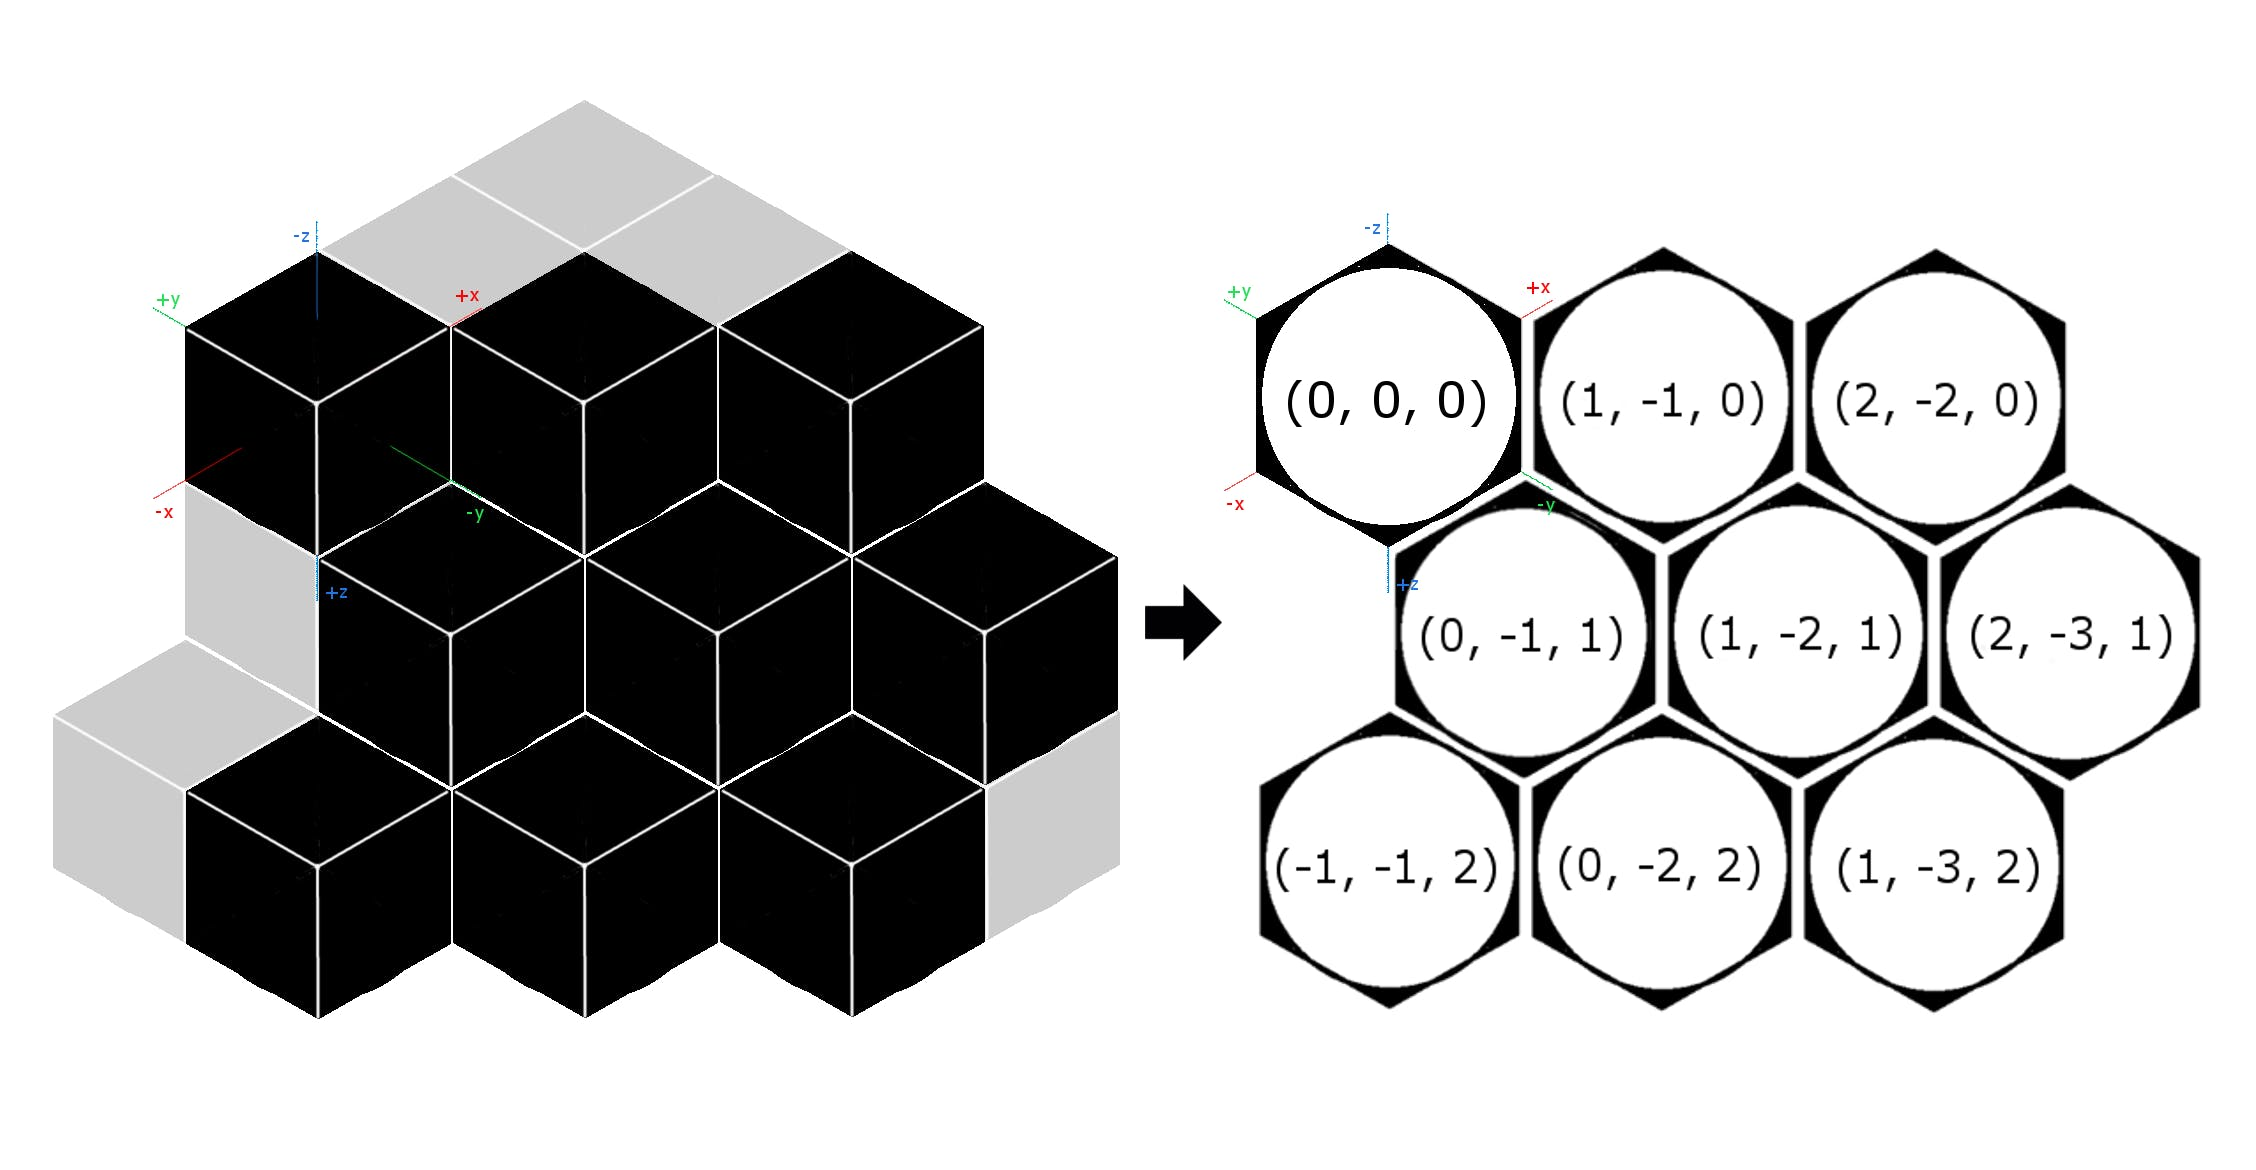 cube_to_hex_grid.png